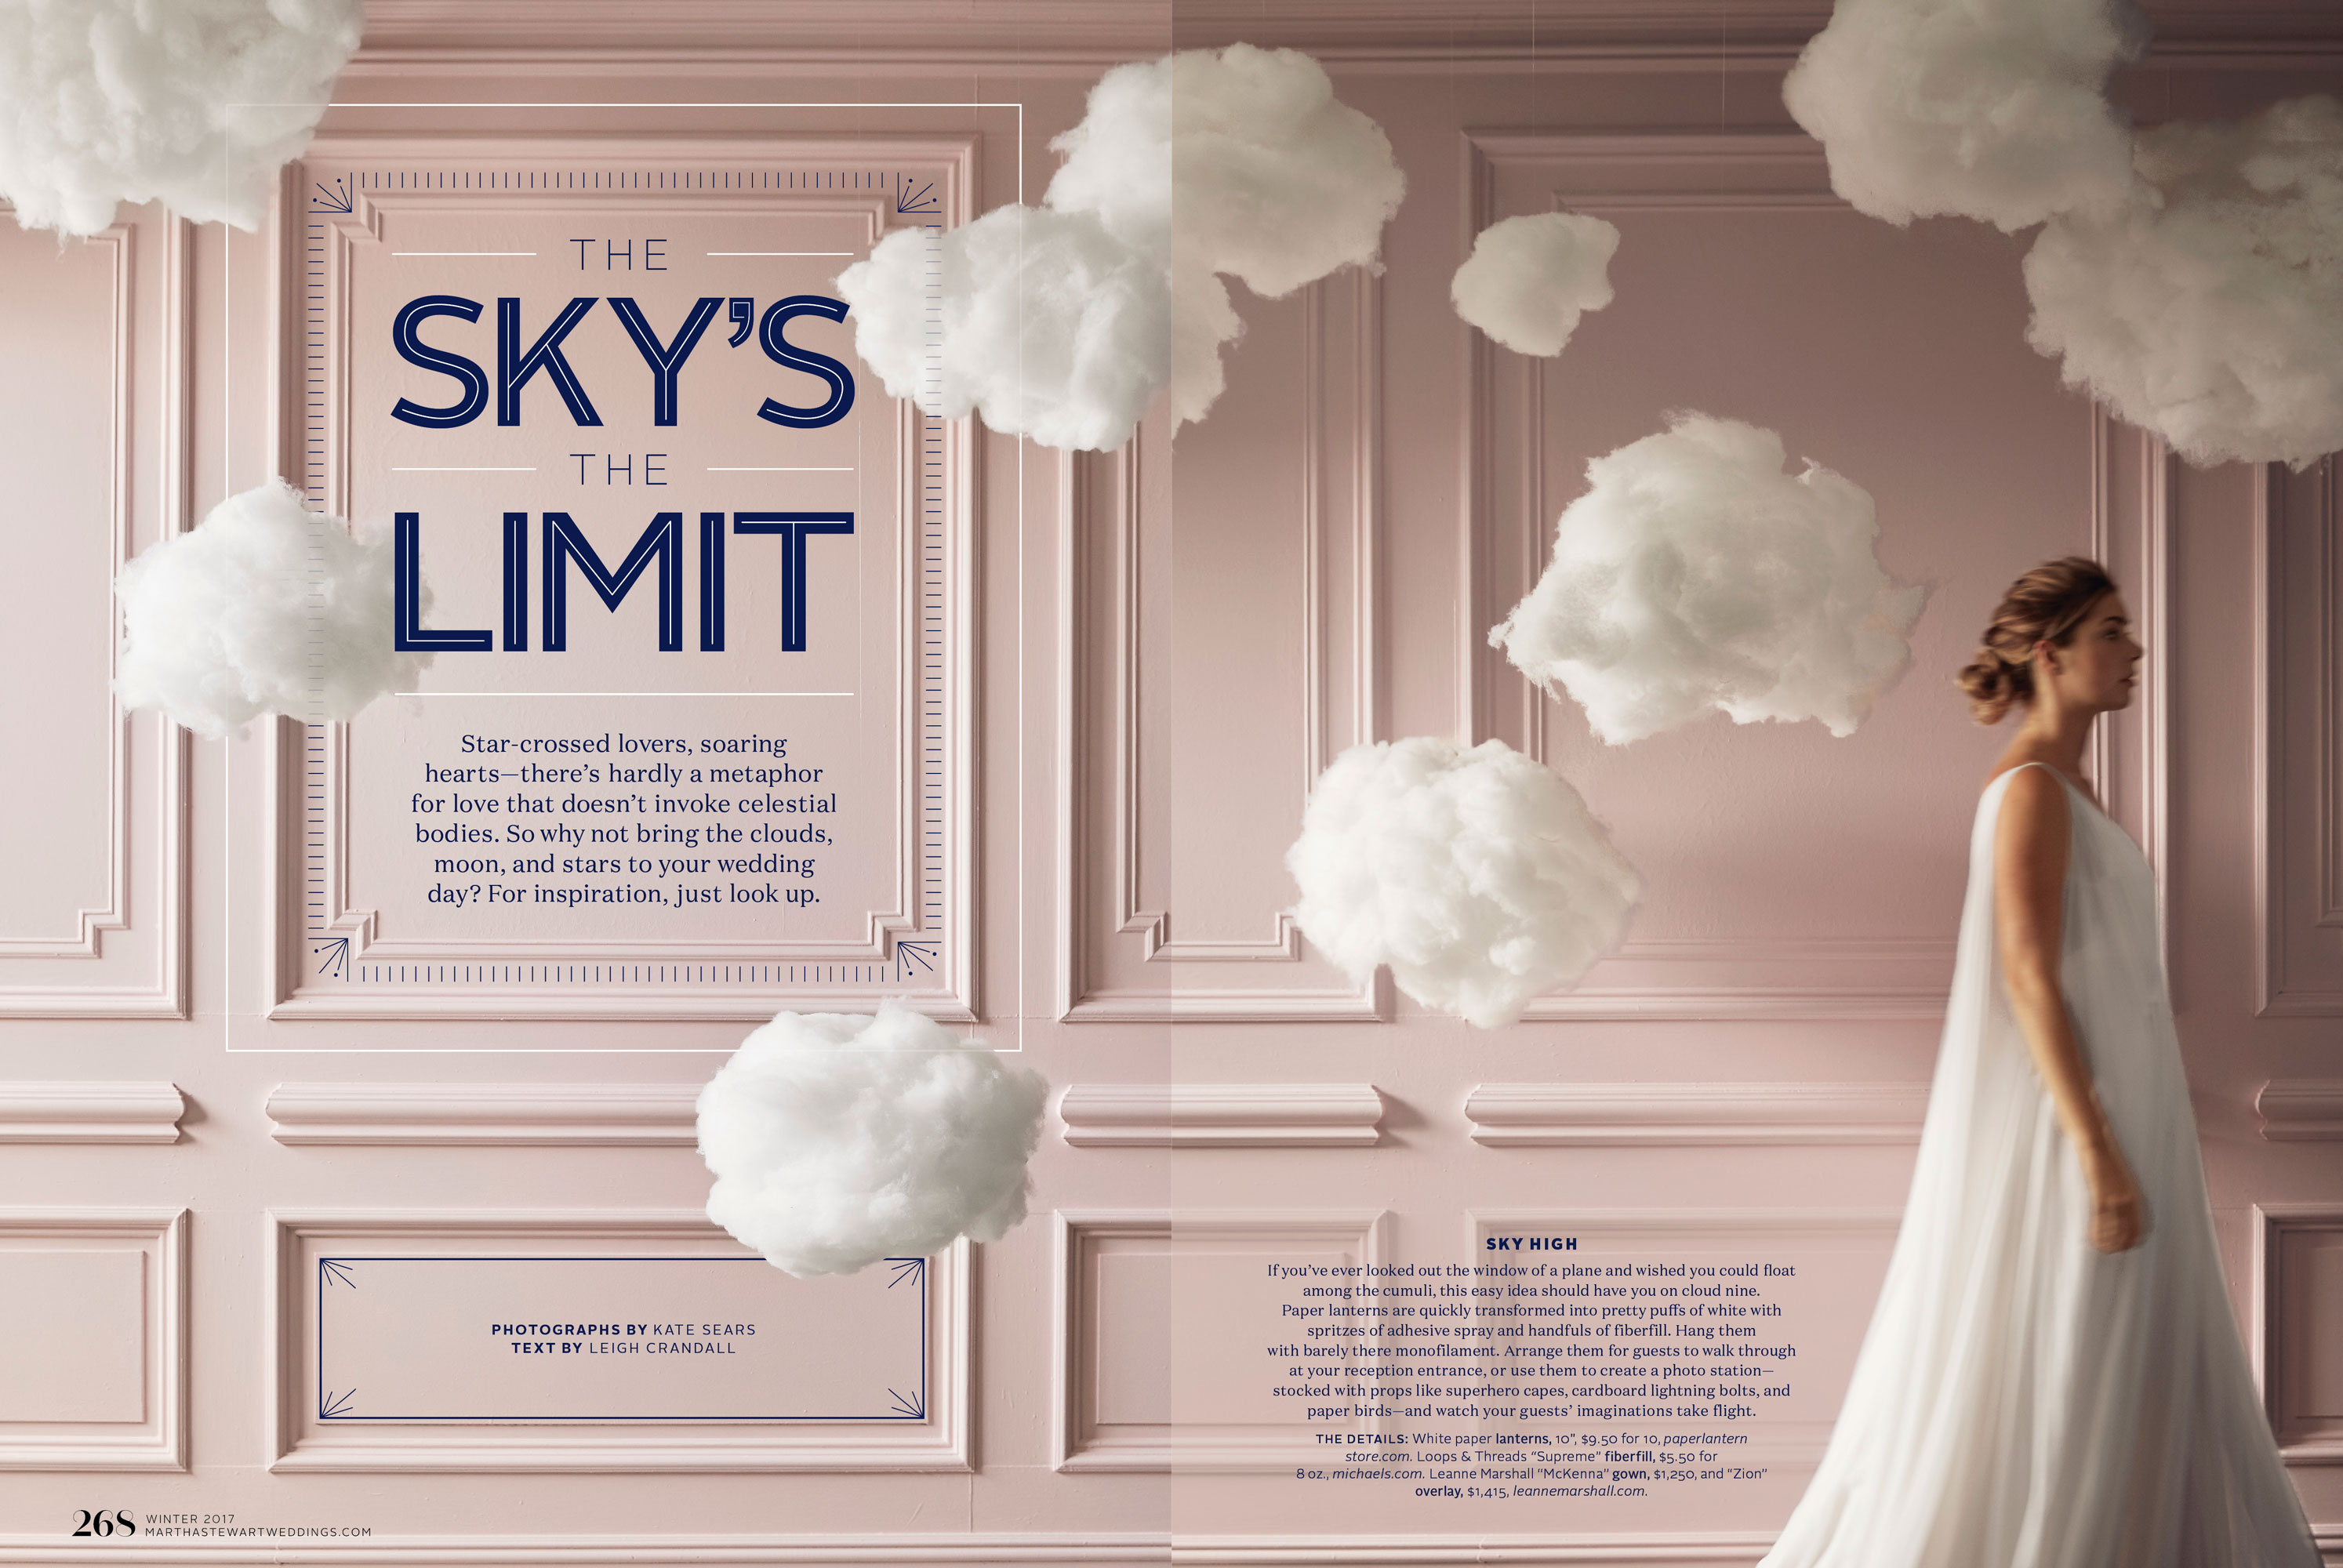 The Sky's the Limit by Megan Hillman